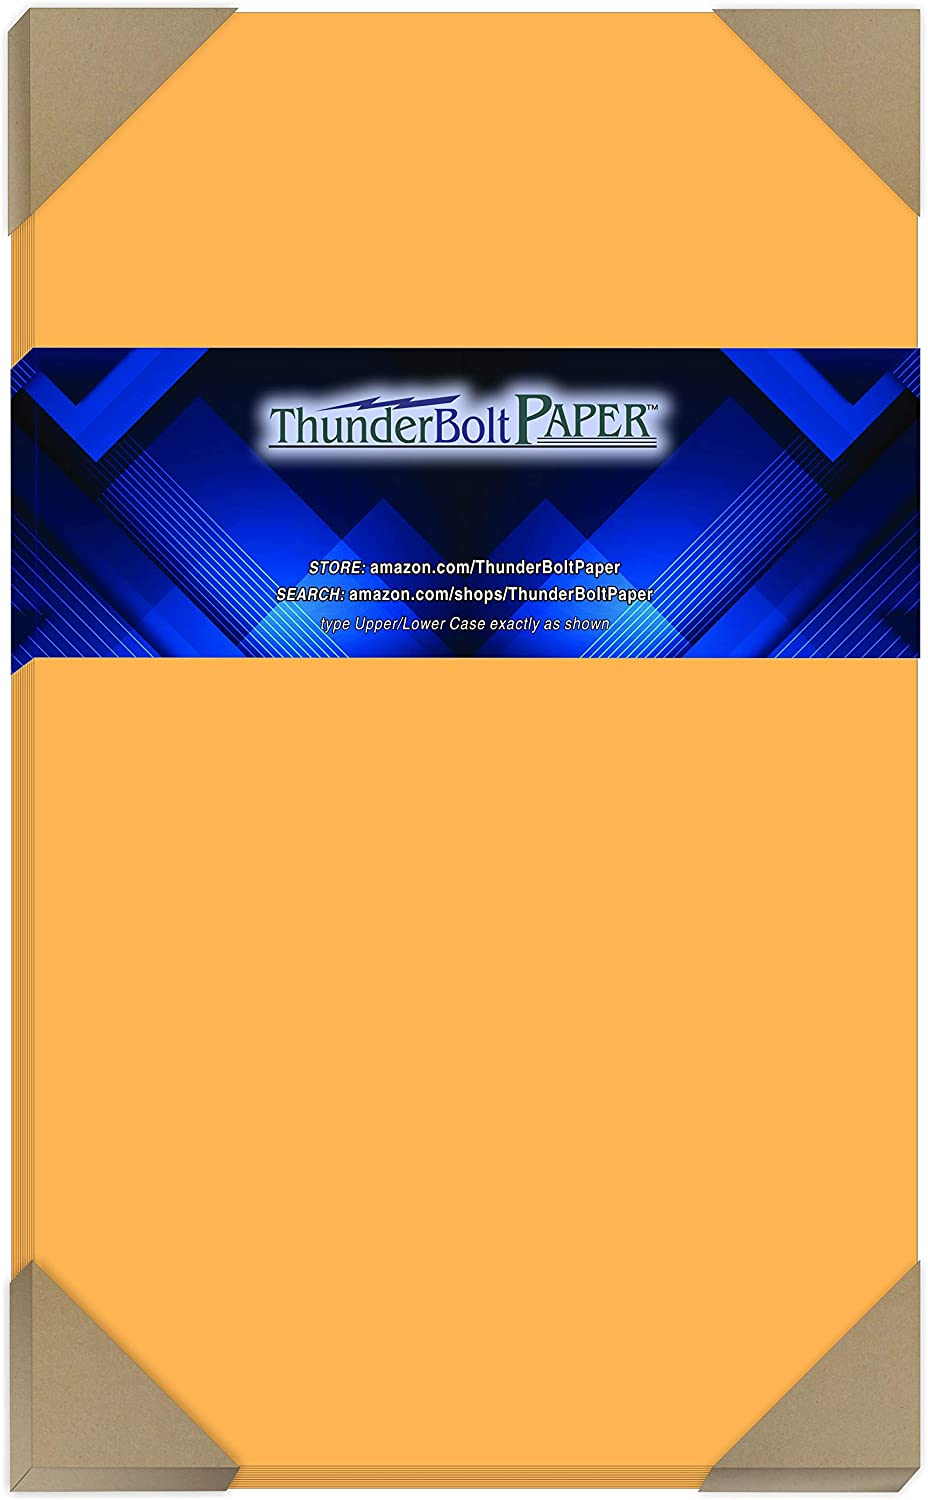 100 Bright Gold 65lb Cover|Card Paper - 8.5 X 14 Inches Legal & Menu Size - 65 lb/Pound Light Weight Cardstock - Quality Printable Smooth Surface for Bright Colorful Results